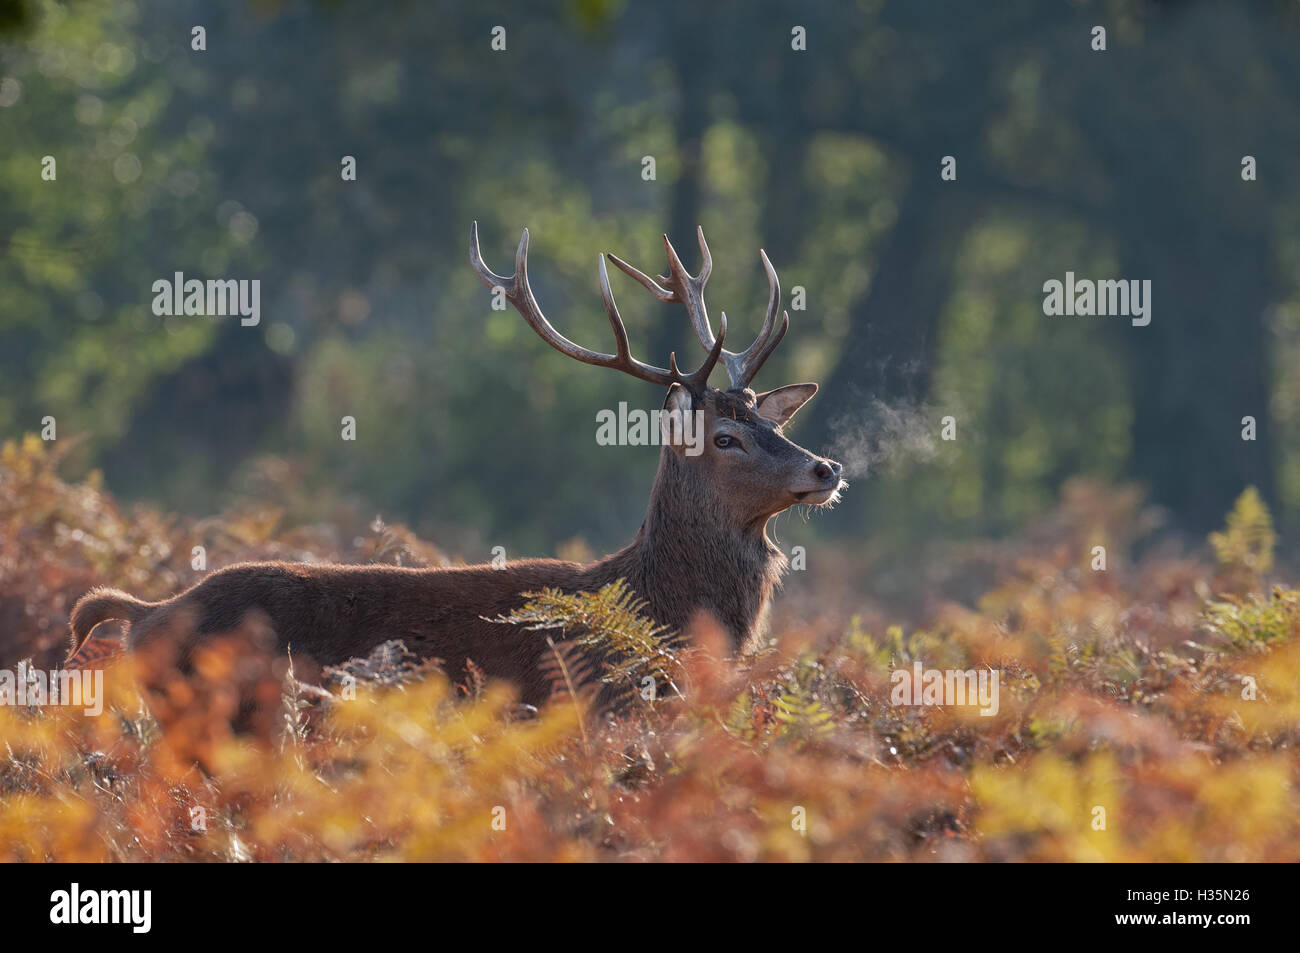 Red Deer-(Stag) Cervus elaphus with vapour from mouth during the rutting season. Uk - Stock Image